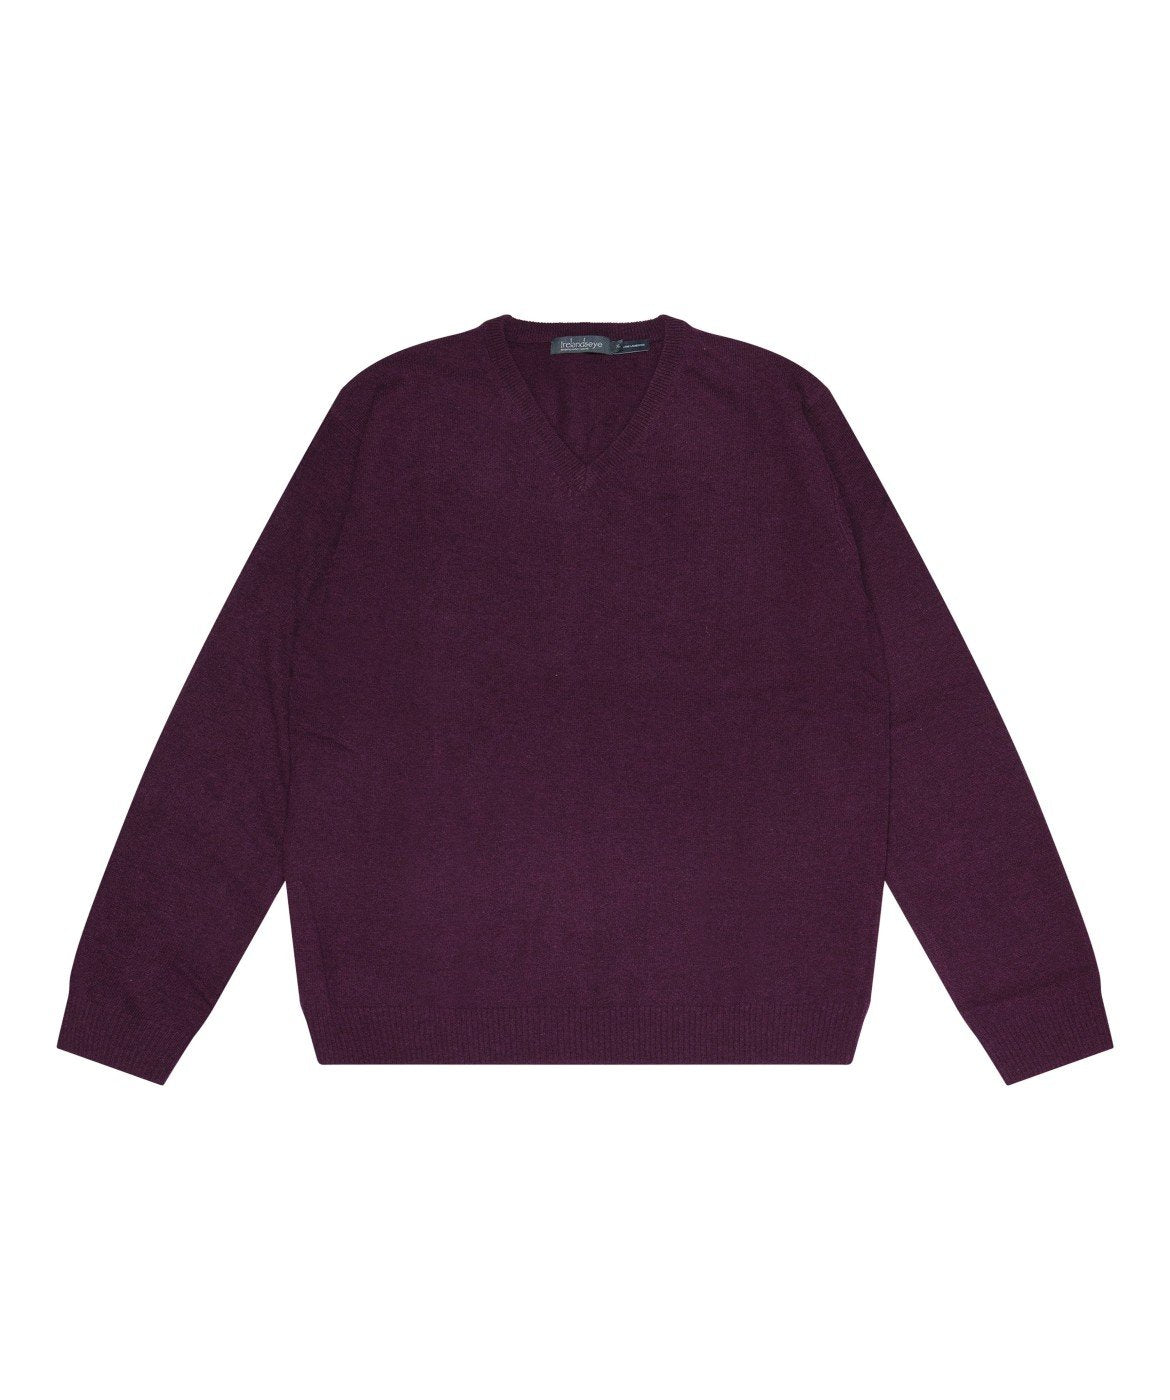 Easy Care V Neck Wool Sweater Burgundy